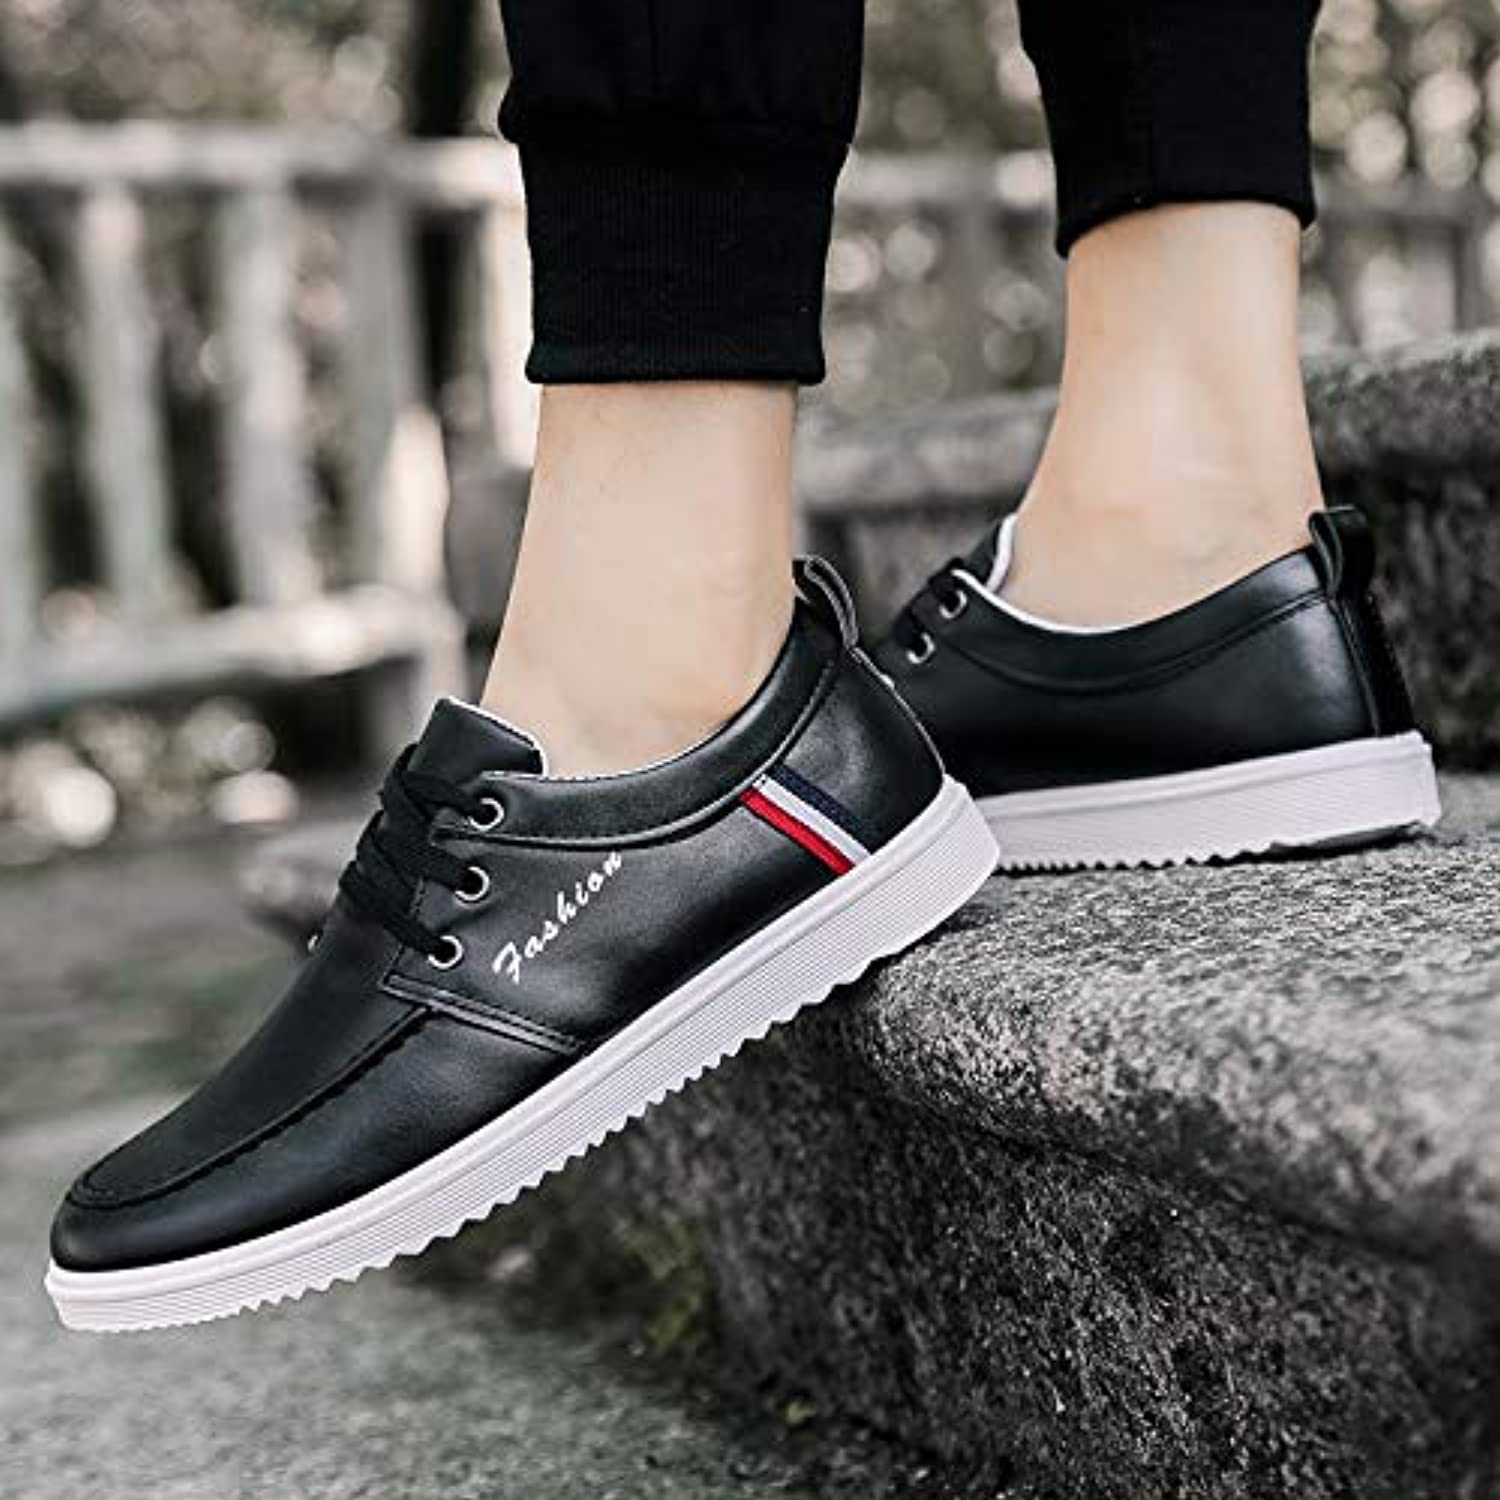 LOVDRAM Men's shoes Men'S shoes New Casual shoes Male Students Fashion Men'S shoes Fashion Sports Wind shoes